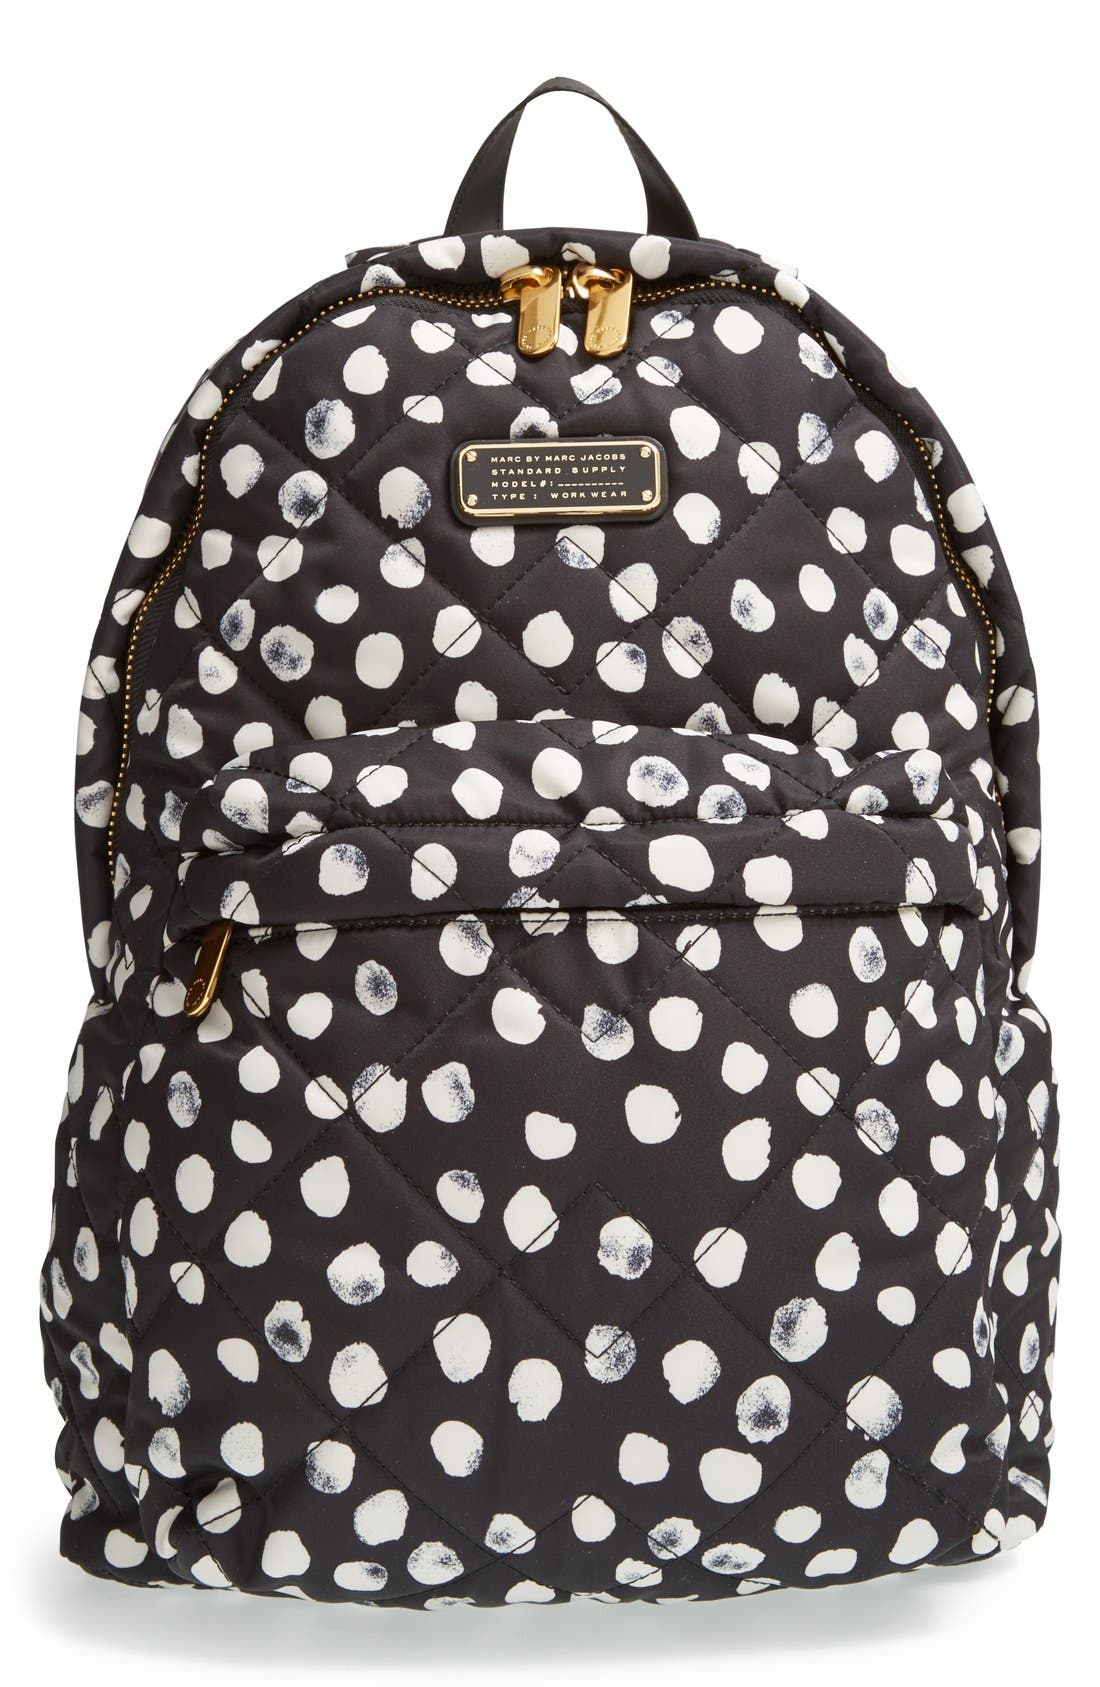 MARC JACOBS, MARC BY MARC JACOBS 'Crosby' Quilted Backpack, Main thumbnail 1, color, 001